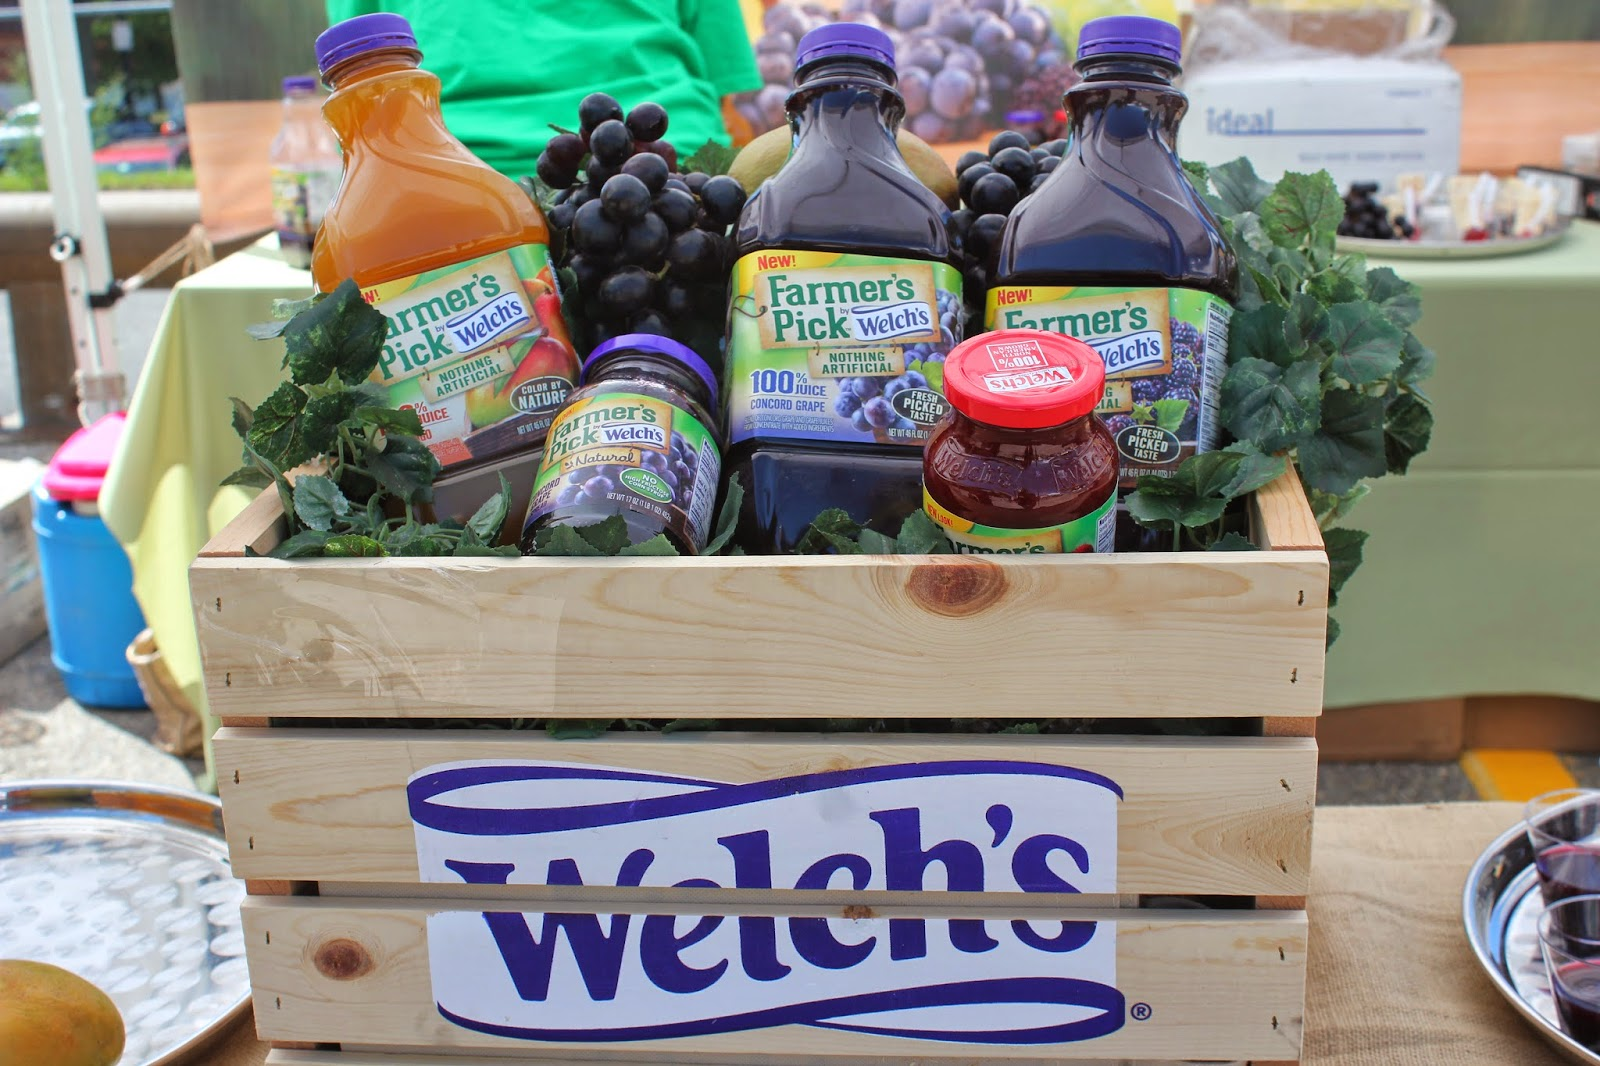 Farmer's Pick by Welch's juices